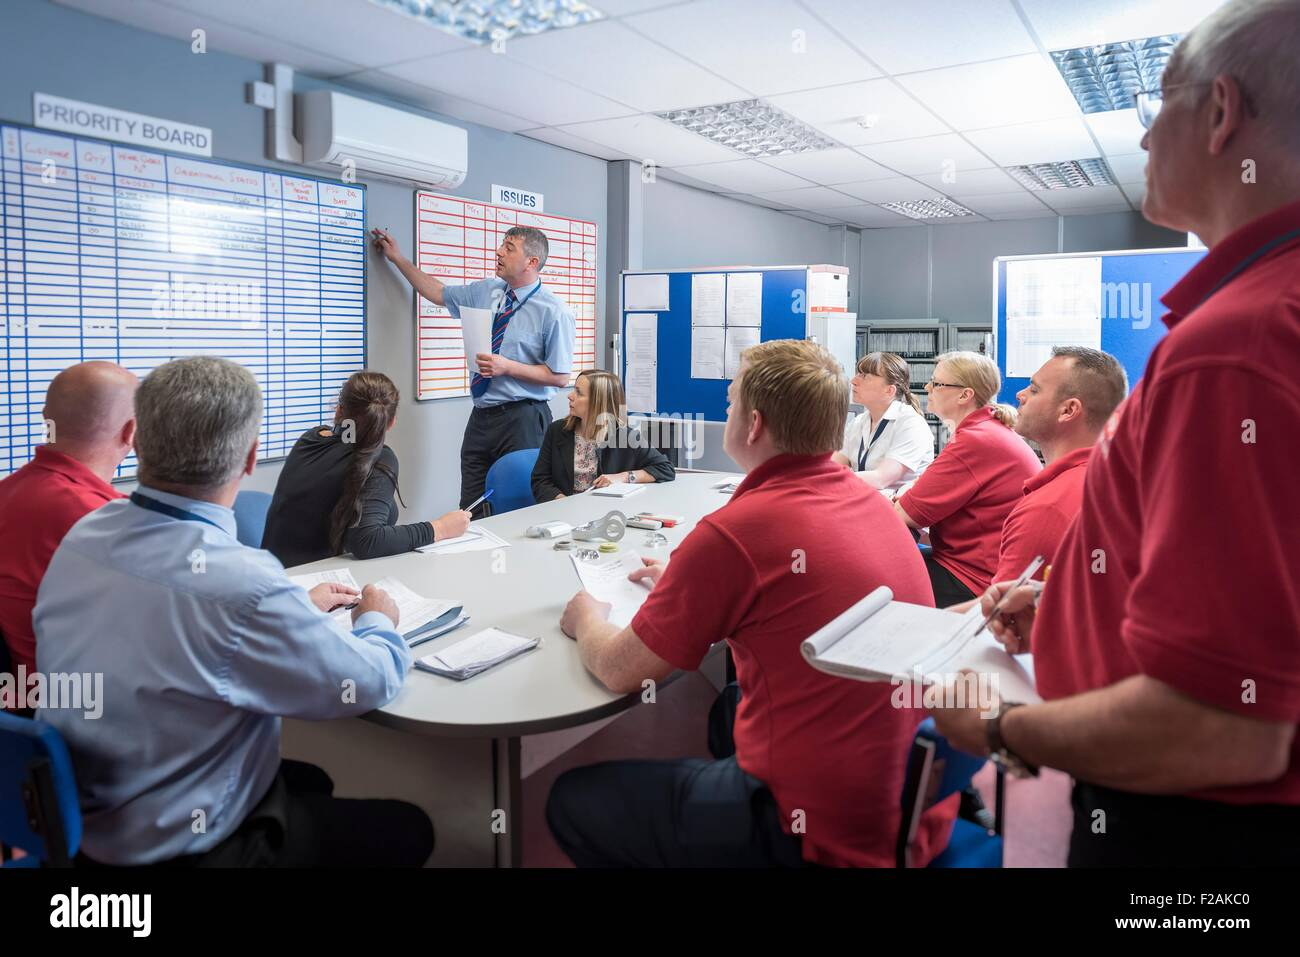 Production meeting in engineering factory - Stock Image